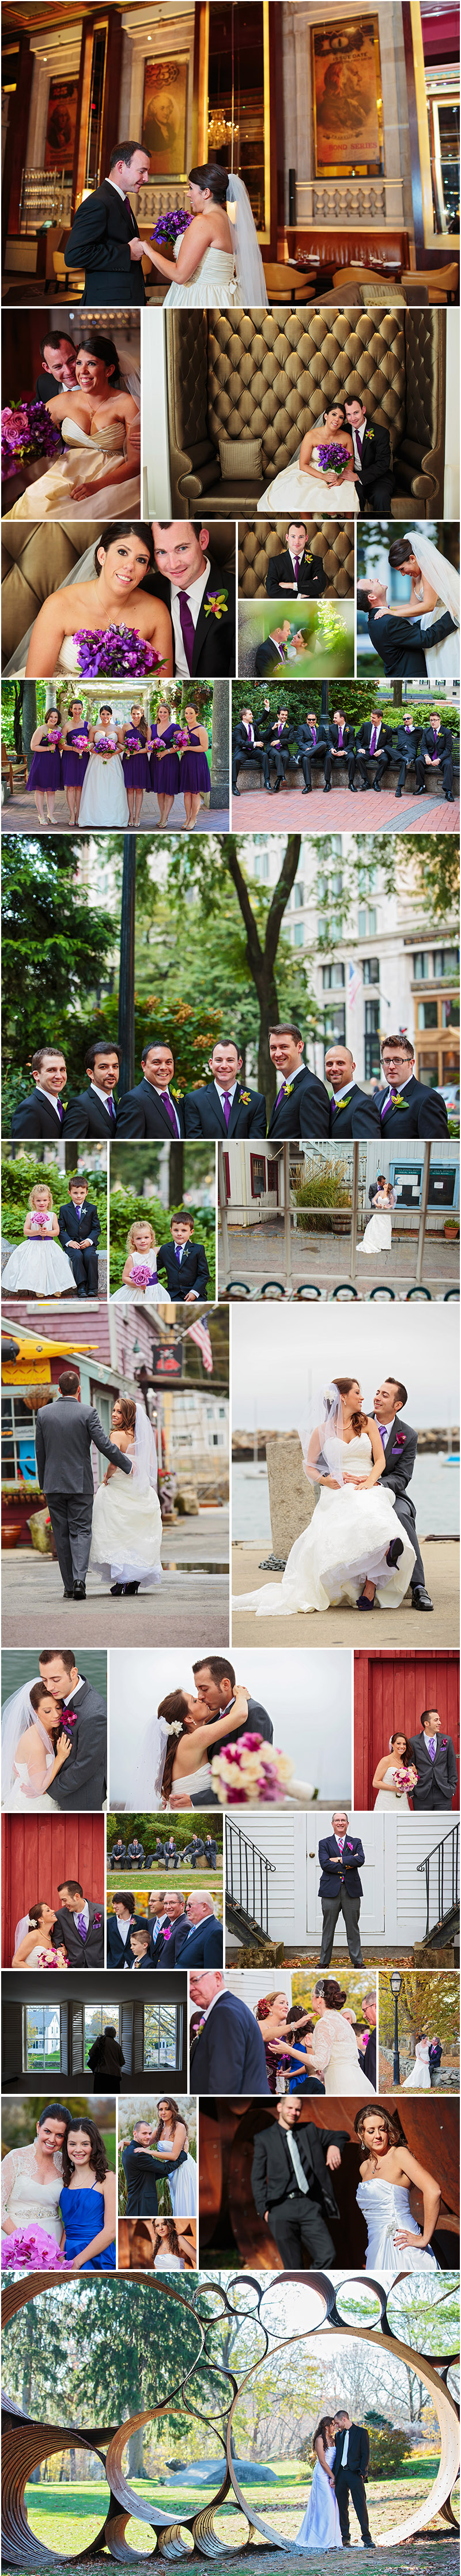 BOSTON WEDDING PHOTOGRAPHERS BEST PHOTOS 2012